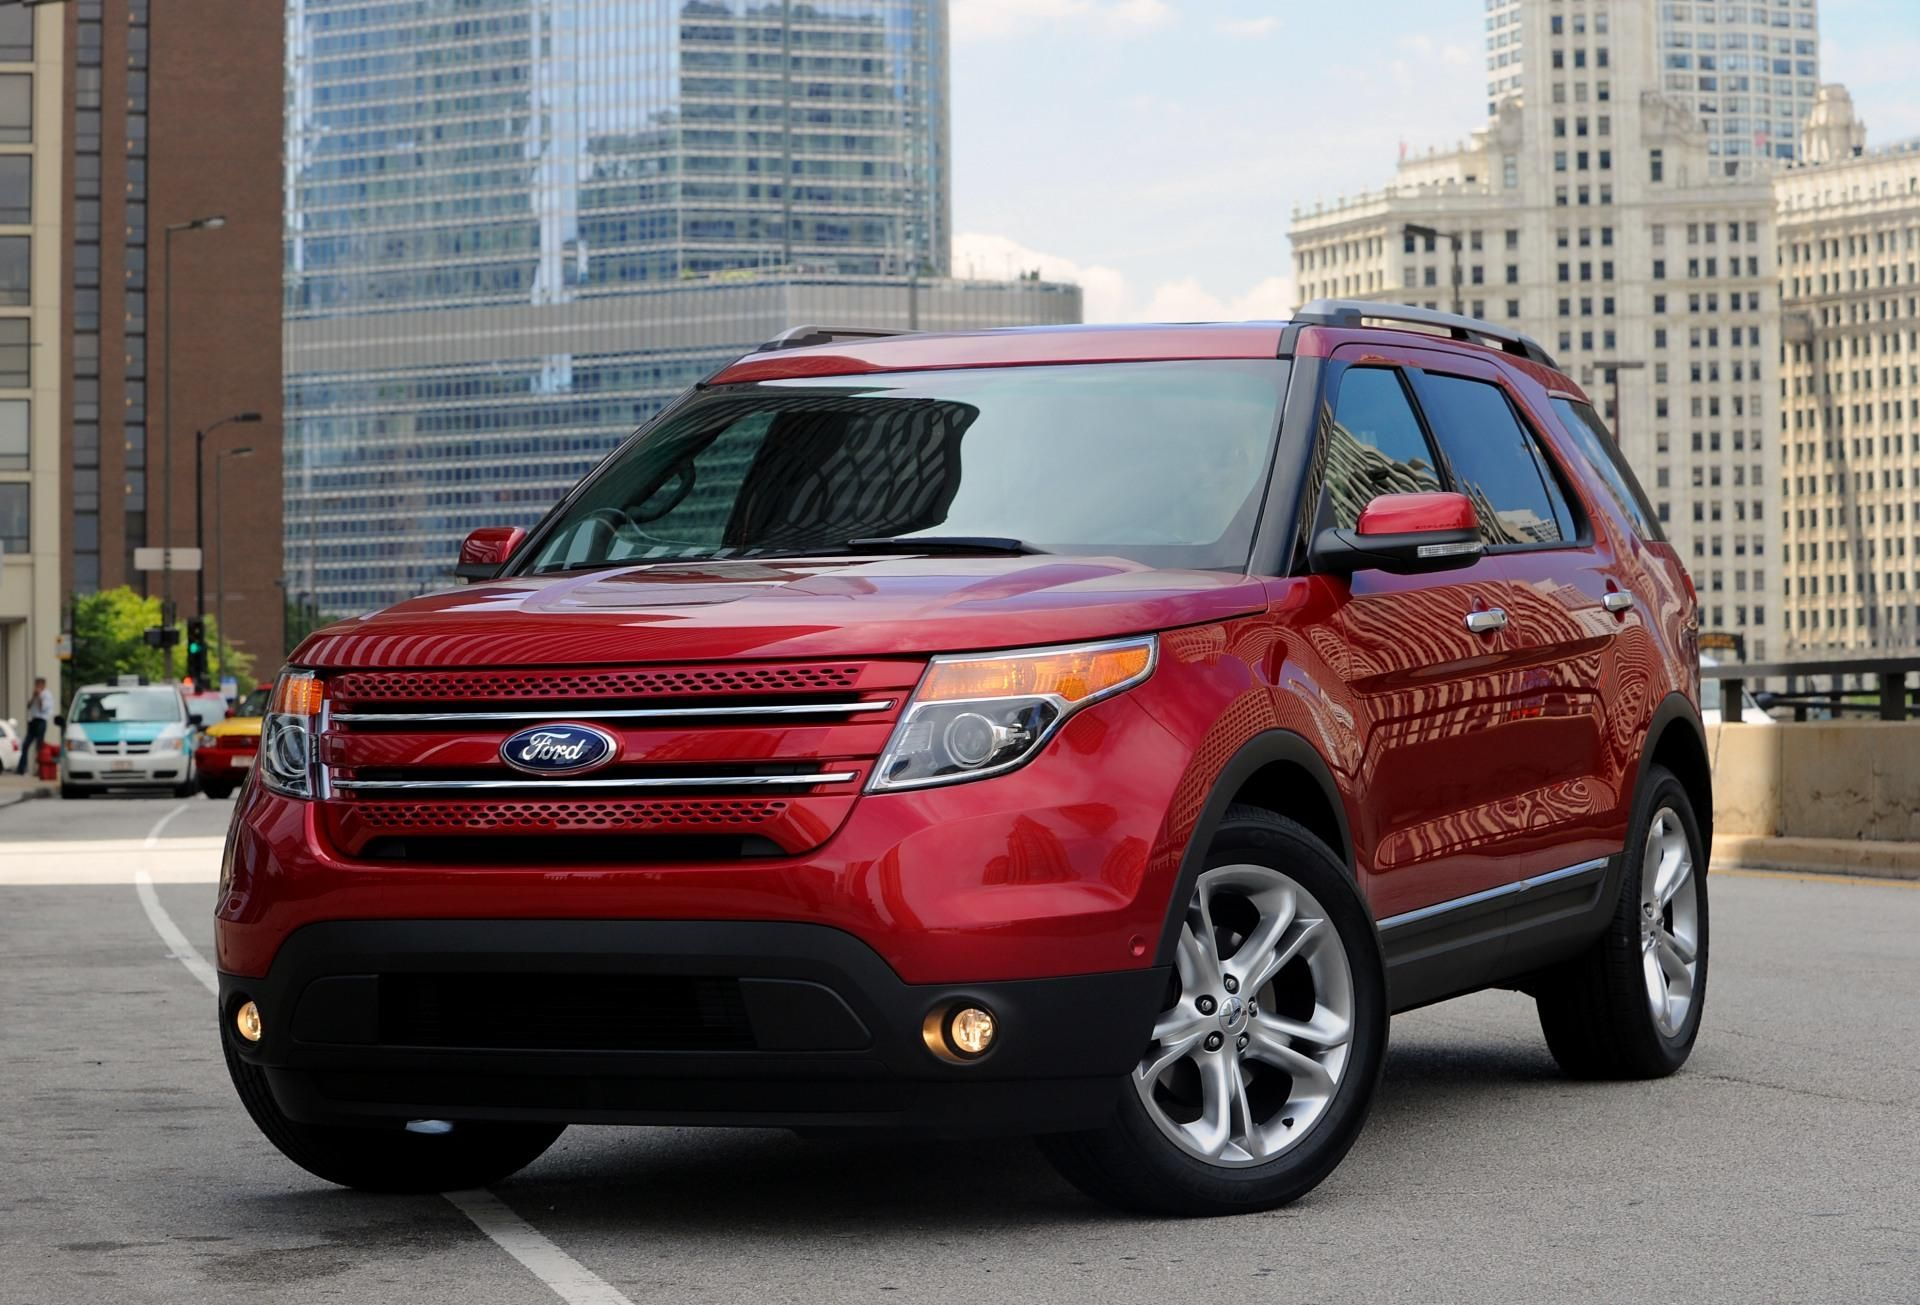 2011 Ford Explorer Candy Apple Red 3 Ford Explorer 2012 Ford